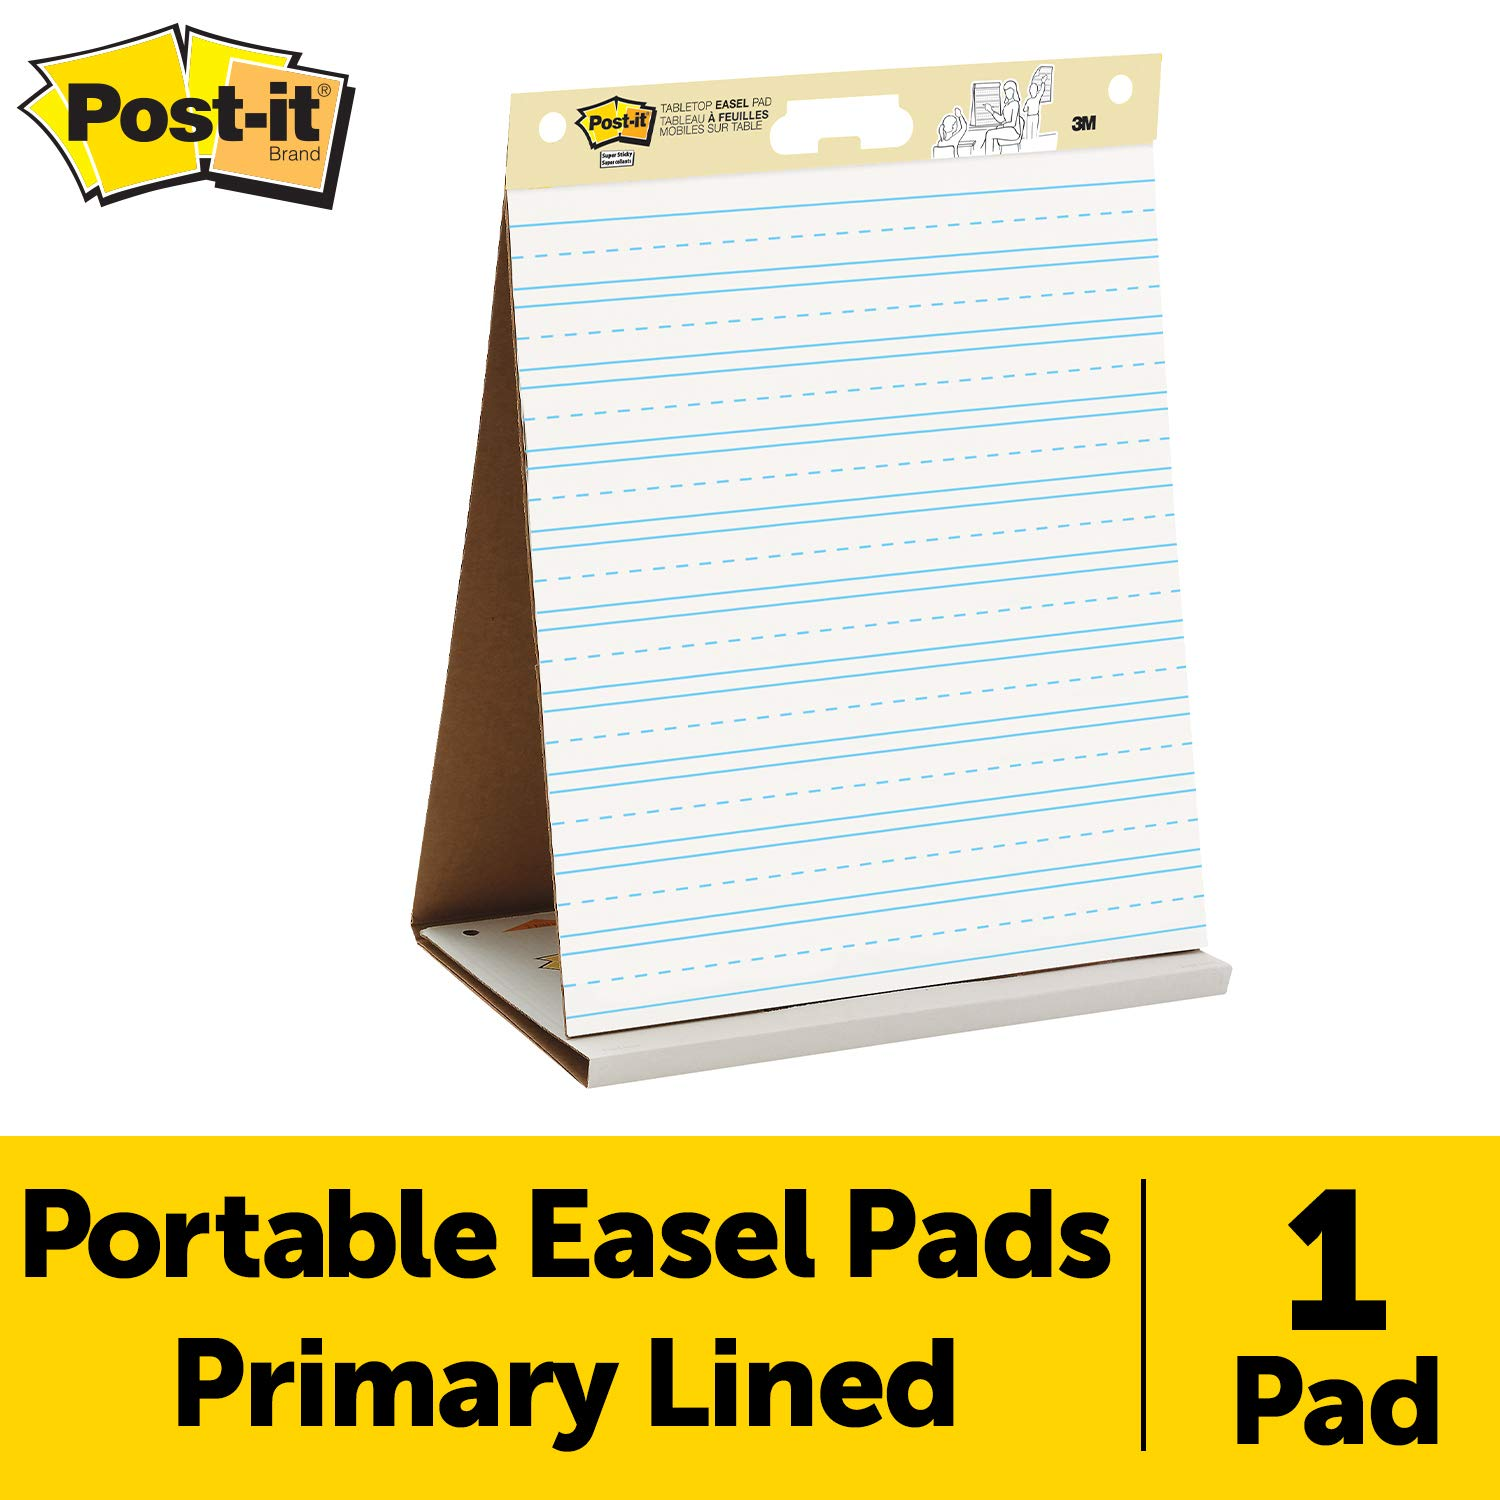 Post-it Super Sticky Tabletop Easel Pad, 20 x 23 Inches, 20 Sheets/Pad, 1 Pad (563PRL), Portable White Premium Self Stick Flip Chart Paper with Primary Lines, School Paper, Built-in Easel Stand